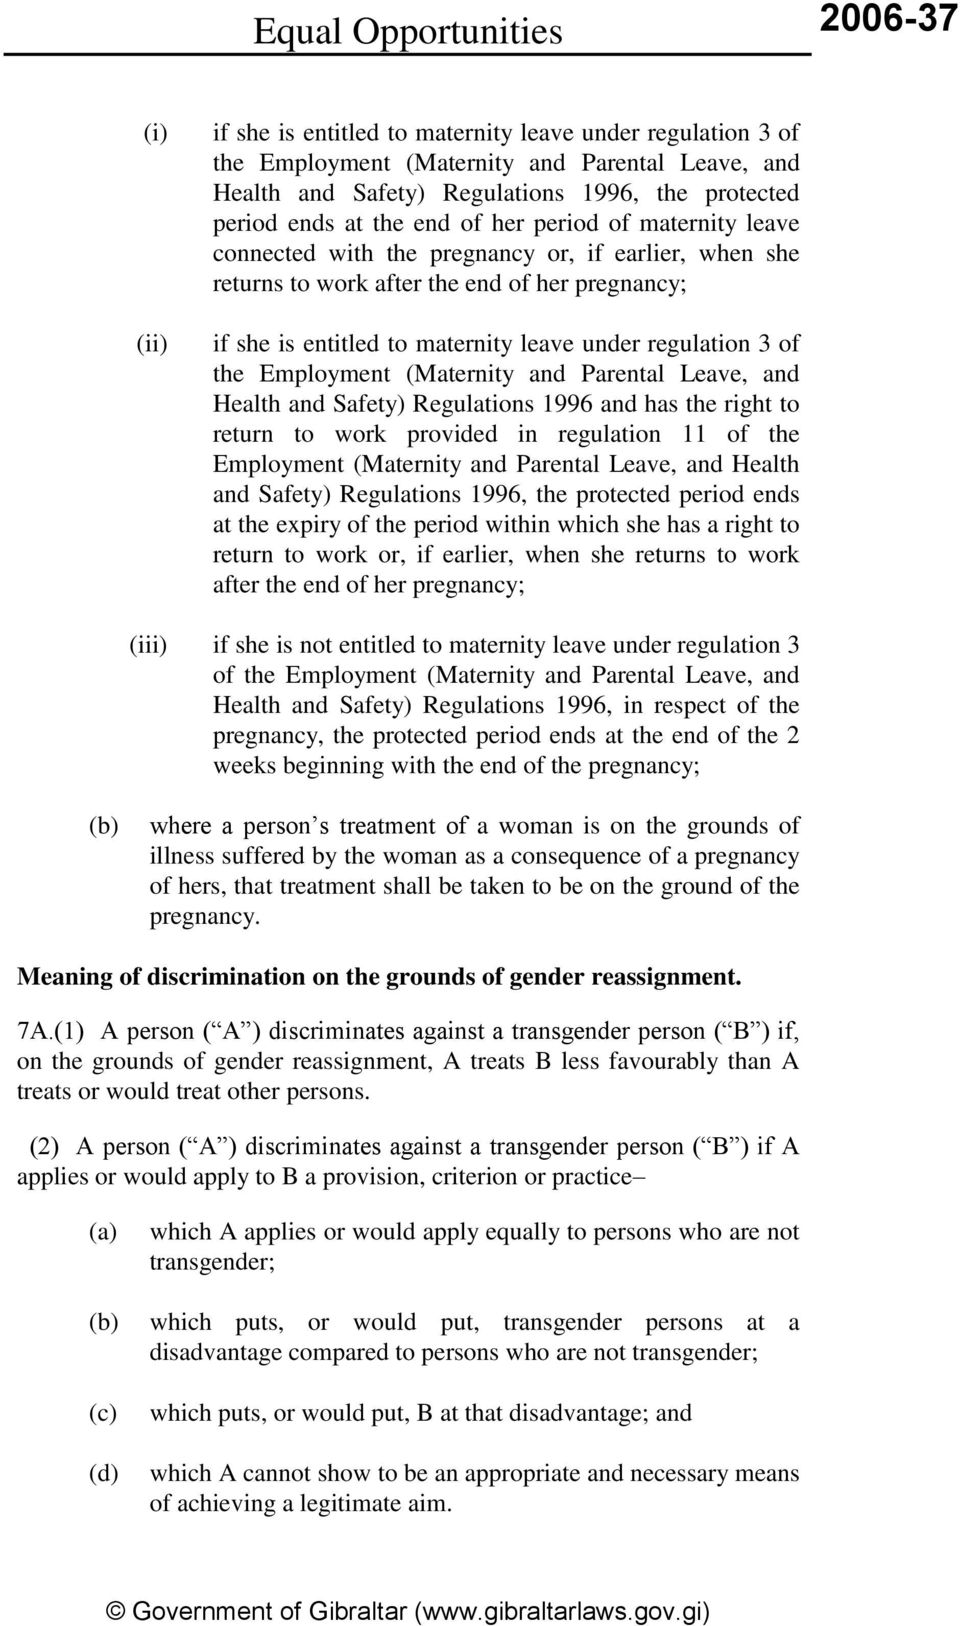 regulation 3 of the Employment (Maternity and Parental Leave, and Health and Safety) Regulations 1996 and has the right to return to work provided in regulation 11 of the Employment (Maternity and